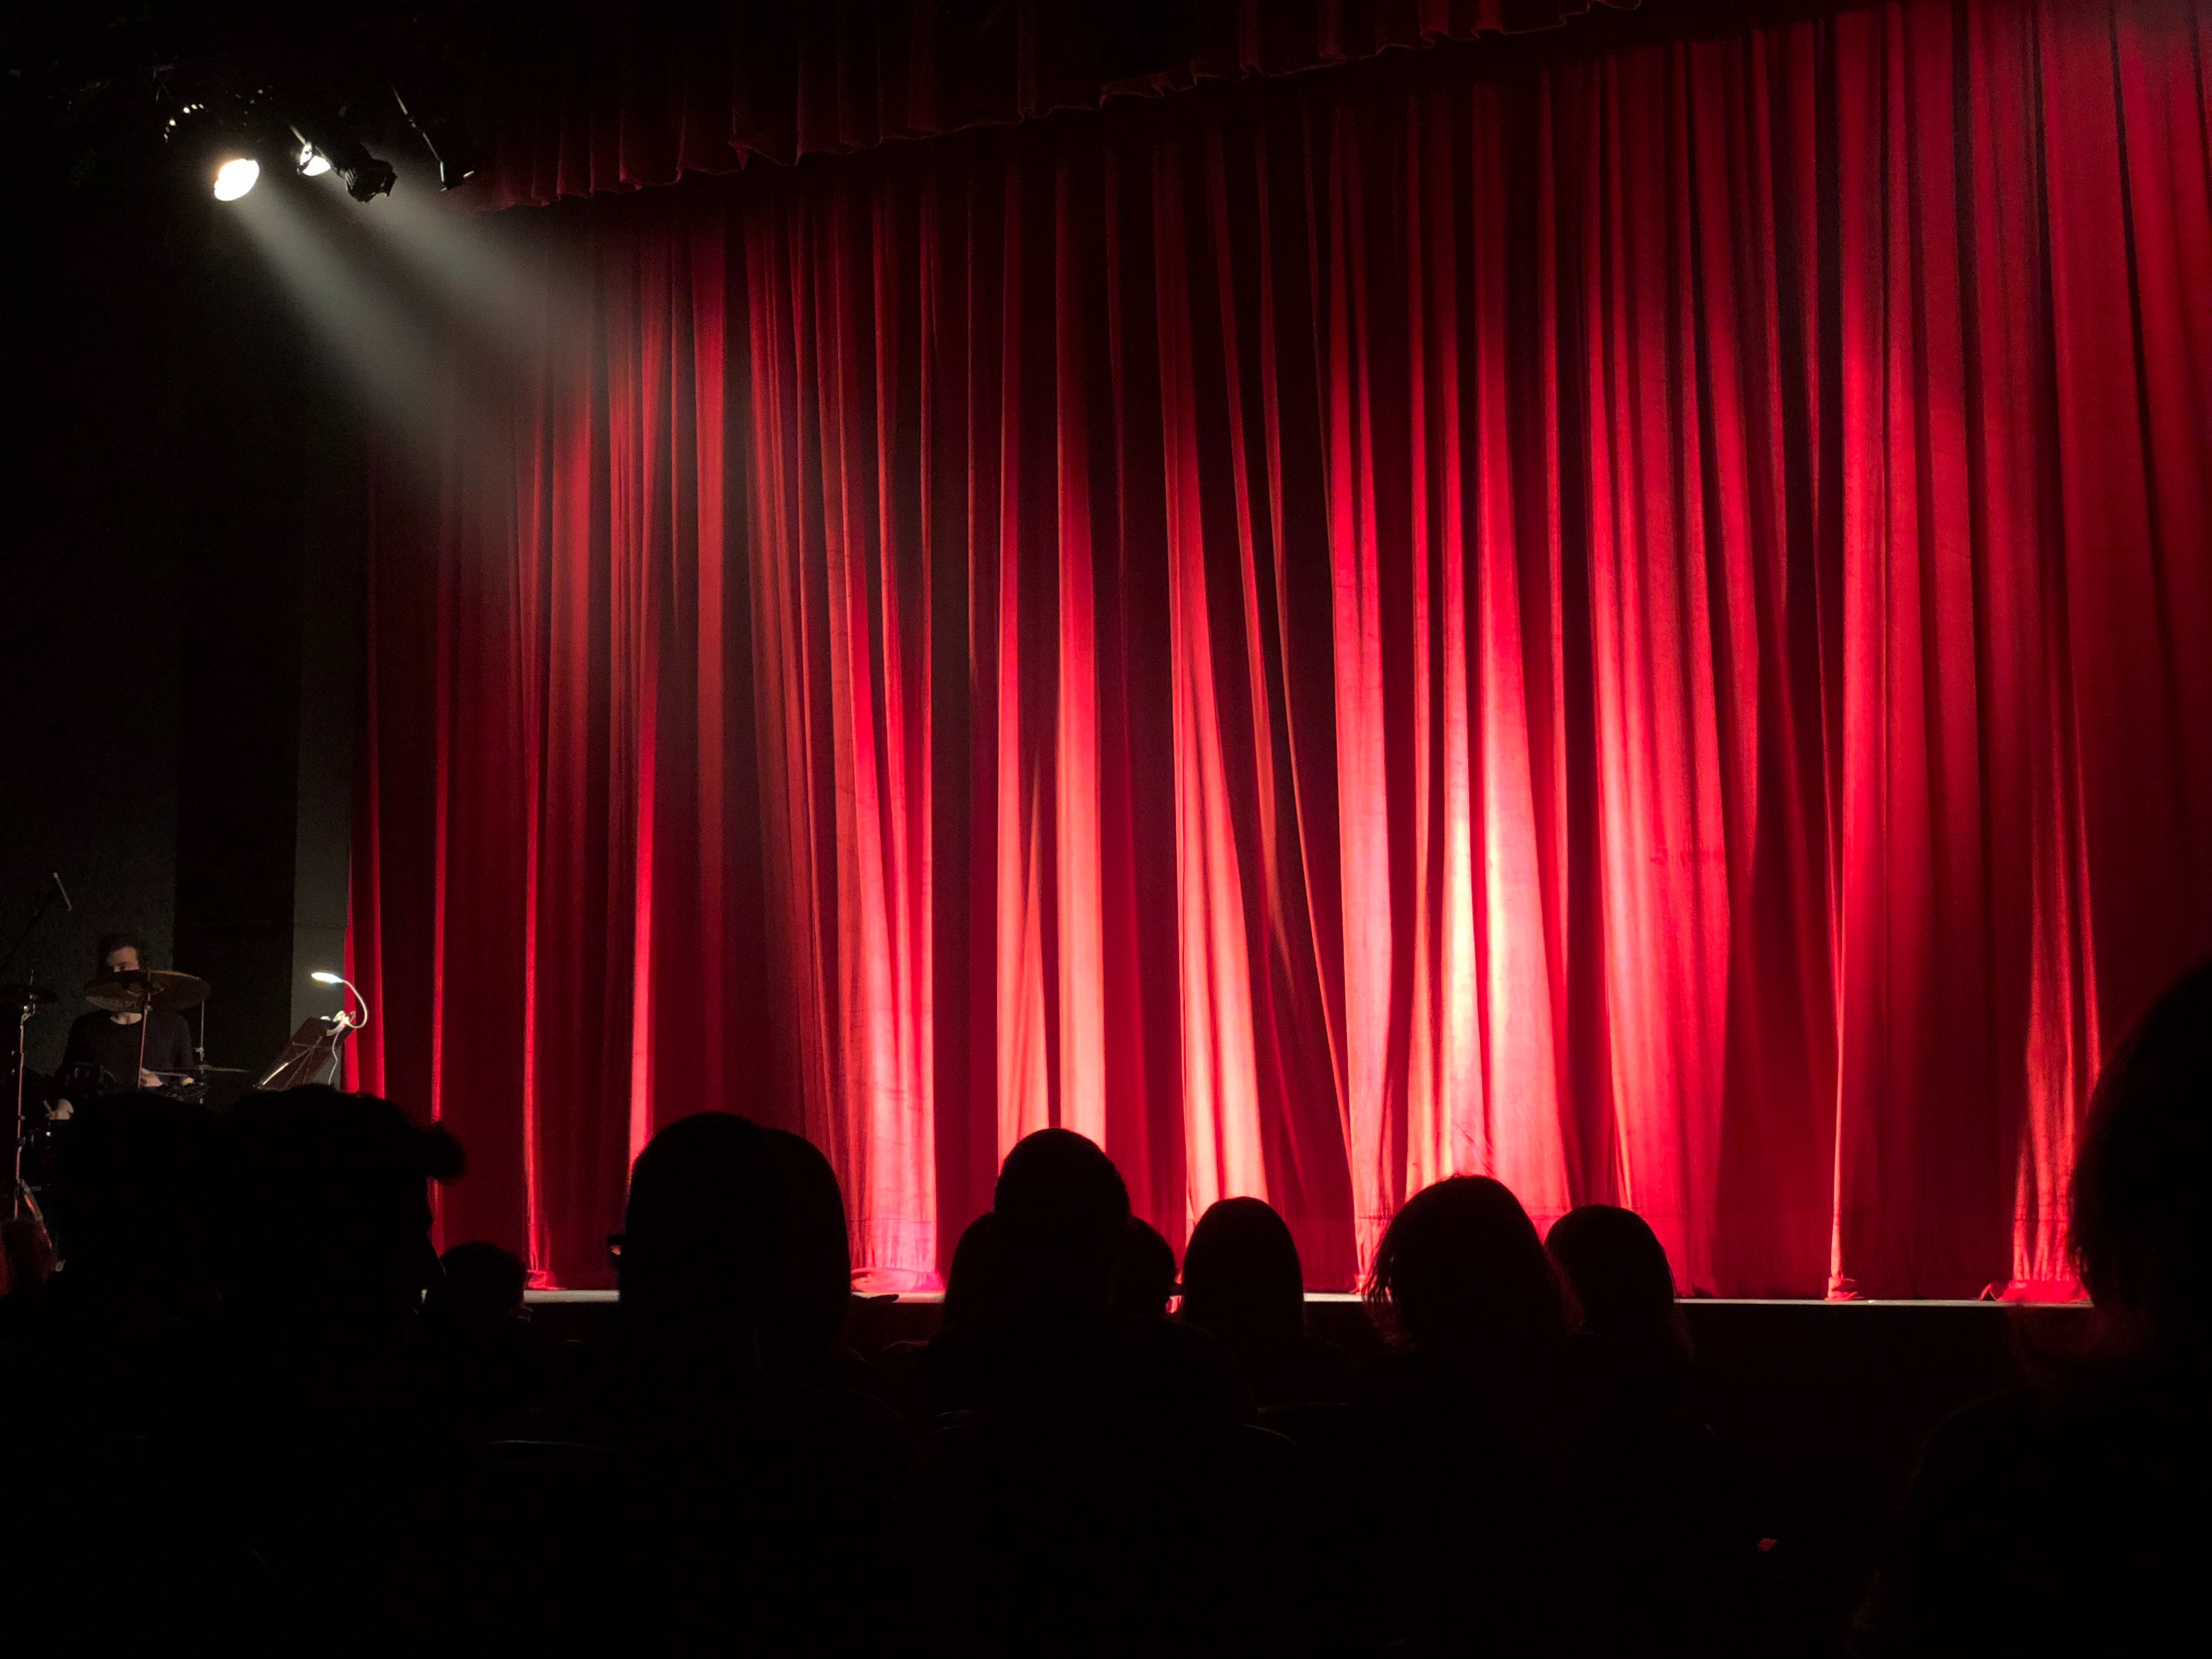 People at theater photo